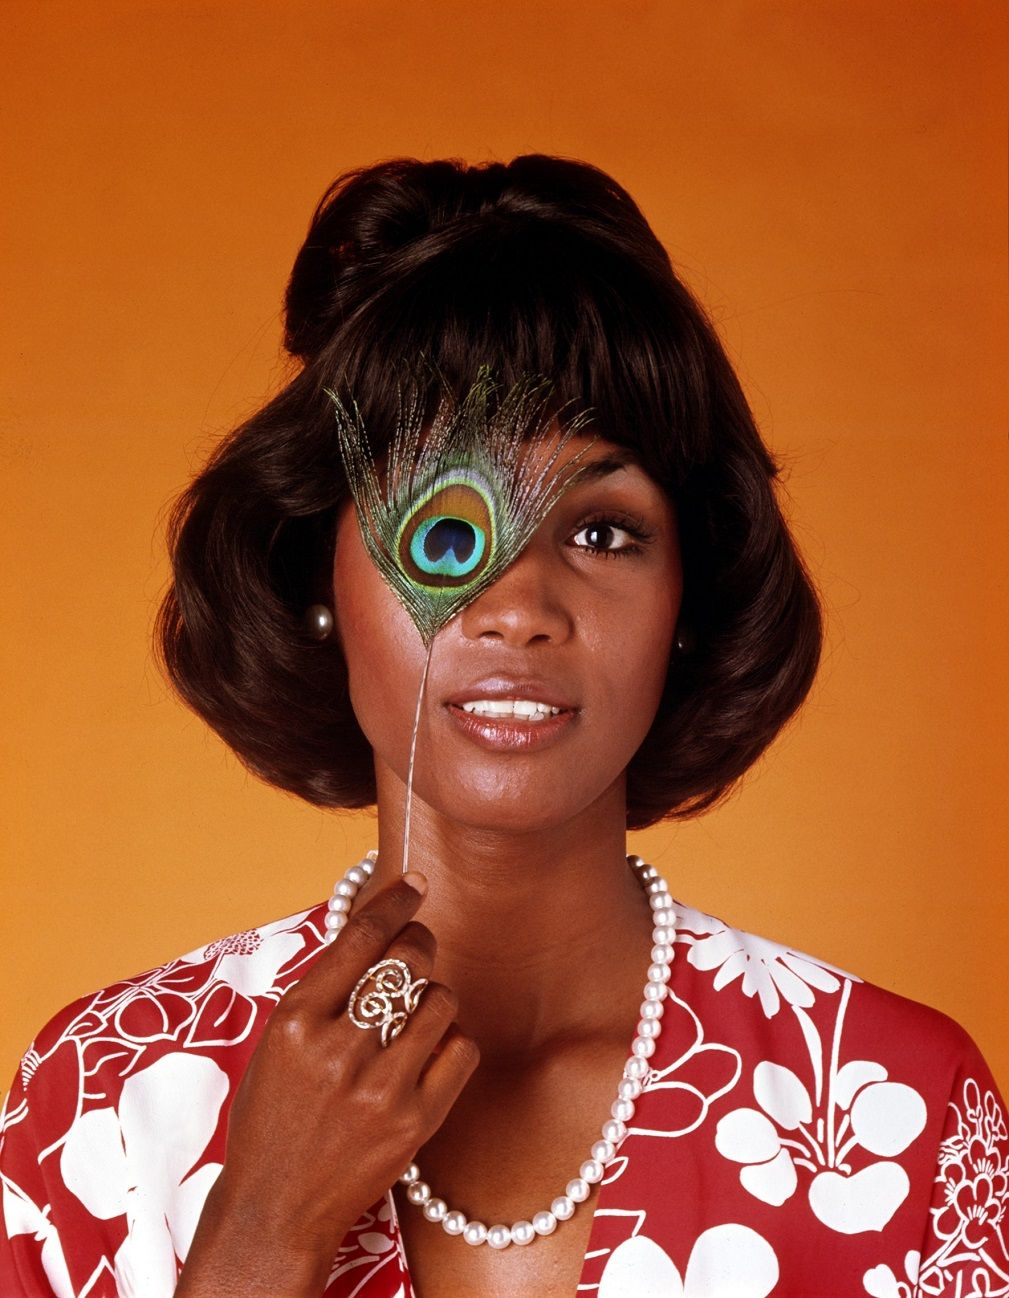 Teresa Graves nude (78 photo), Ass, Paparazzi, Instagram, cameltoe 2020